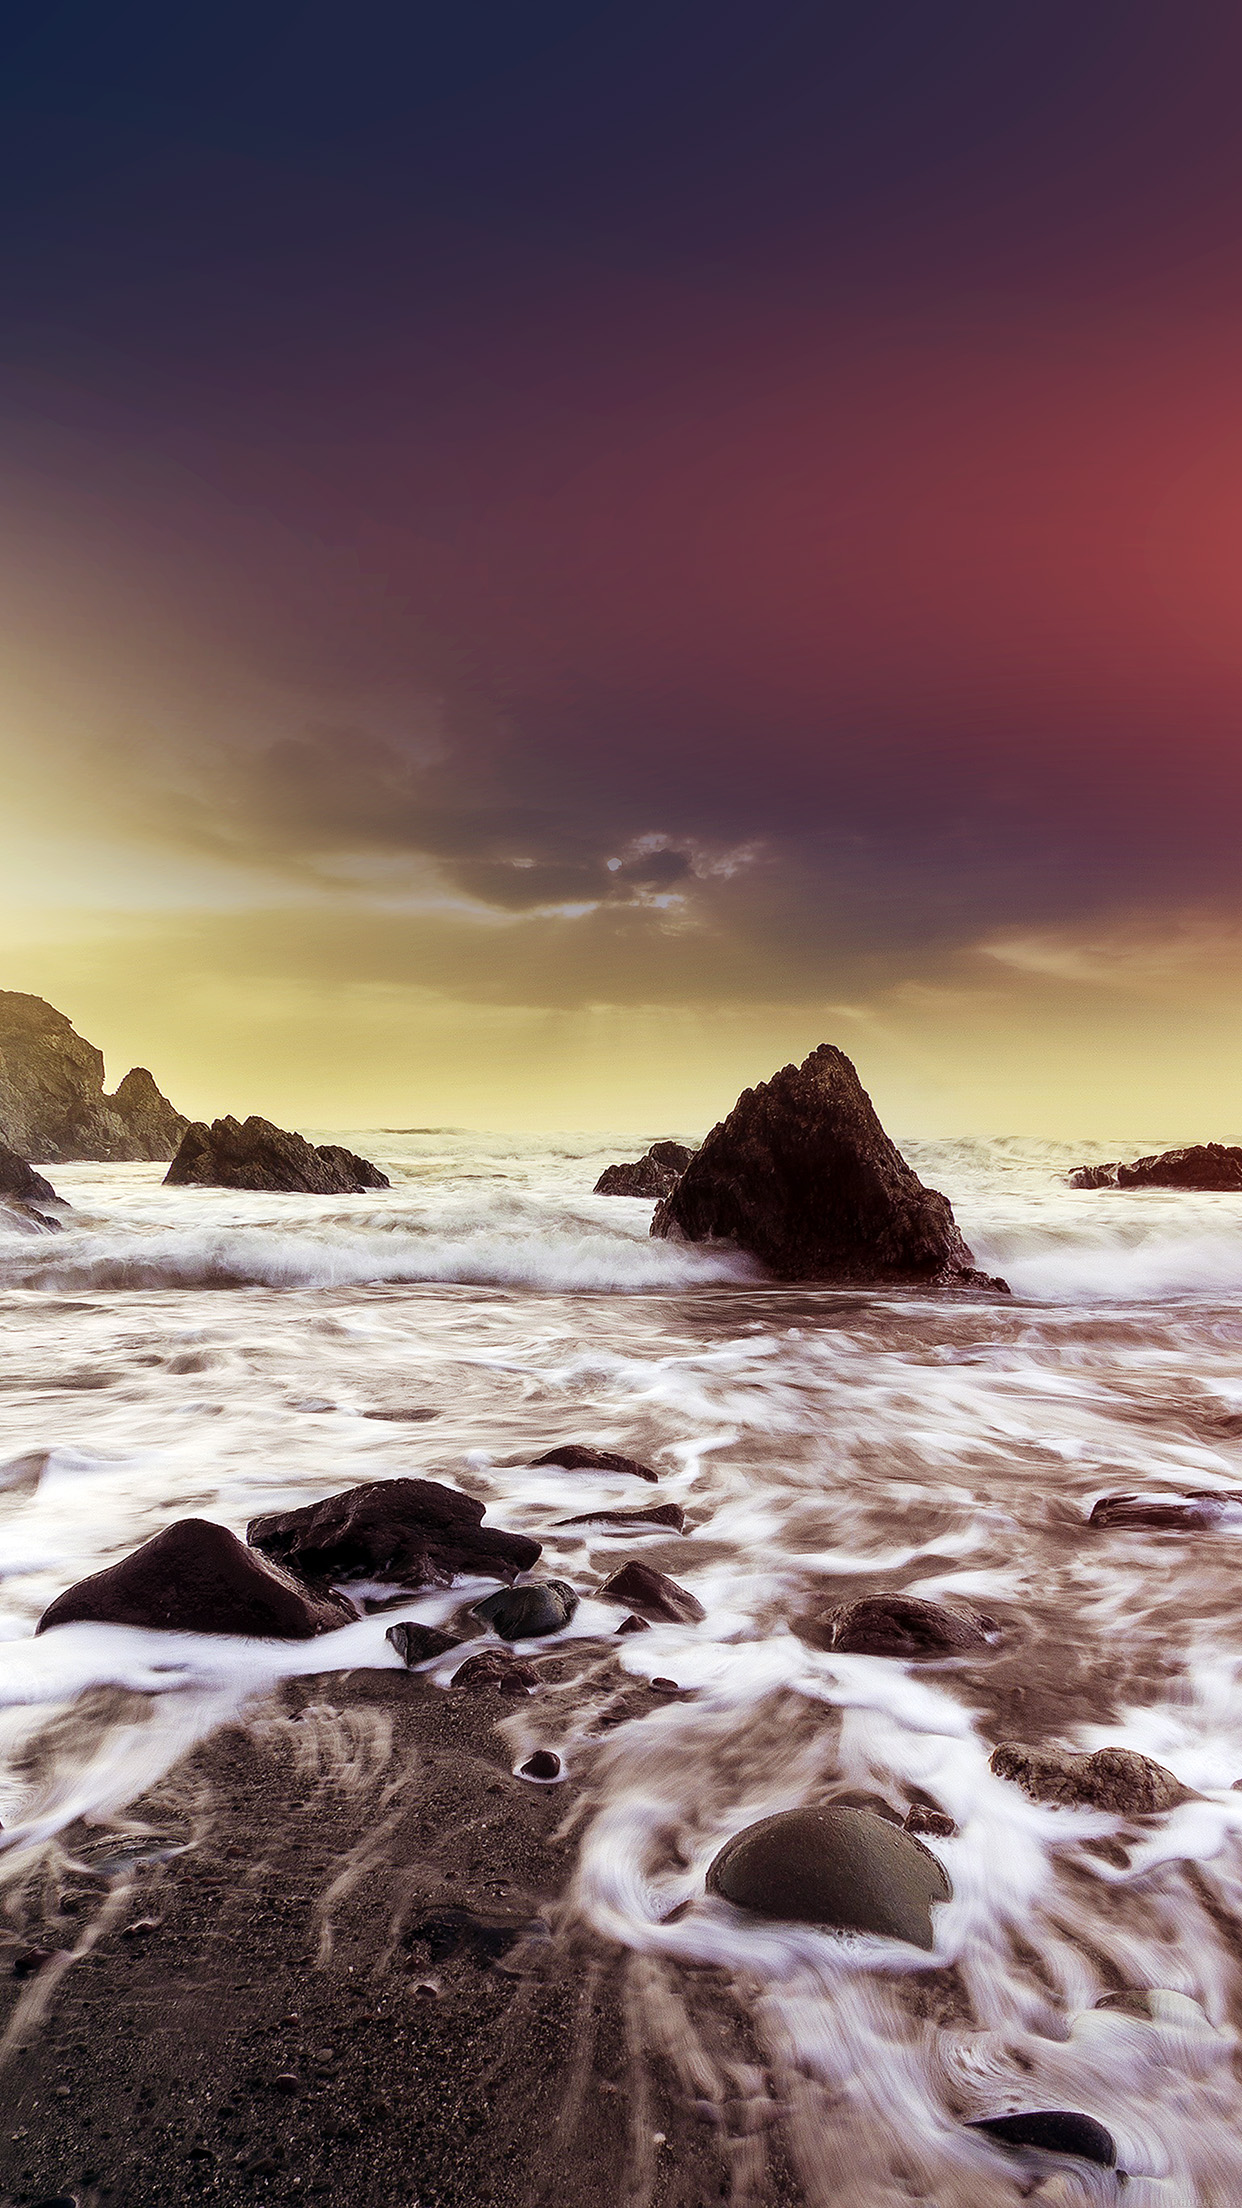 Wave Ocean Beach Red Owen Walters Flare Nature Android wallpaper